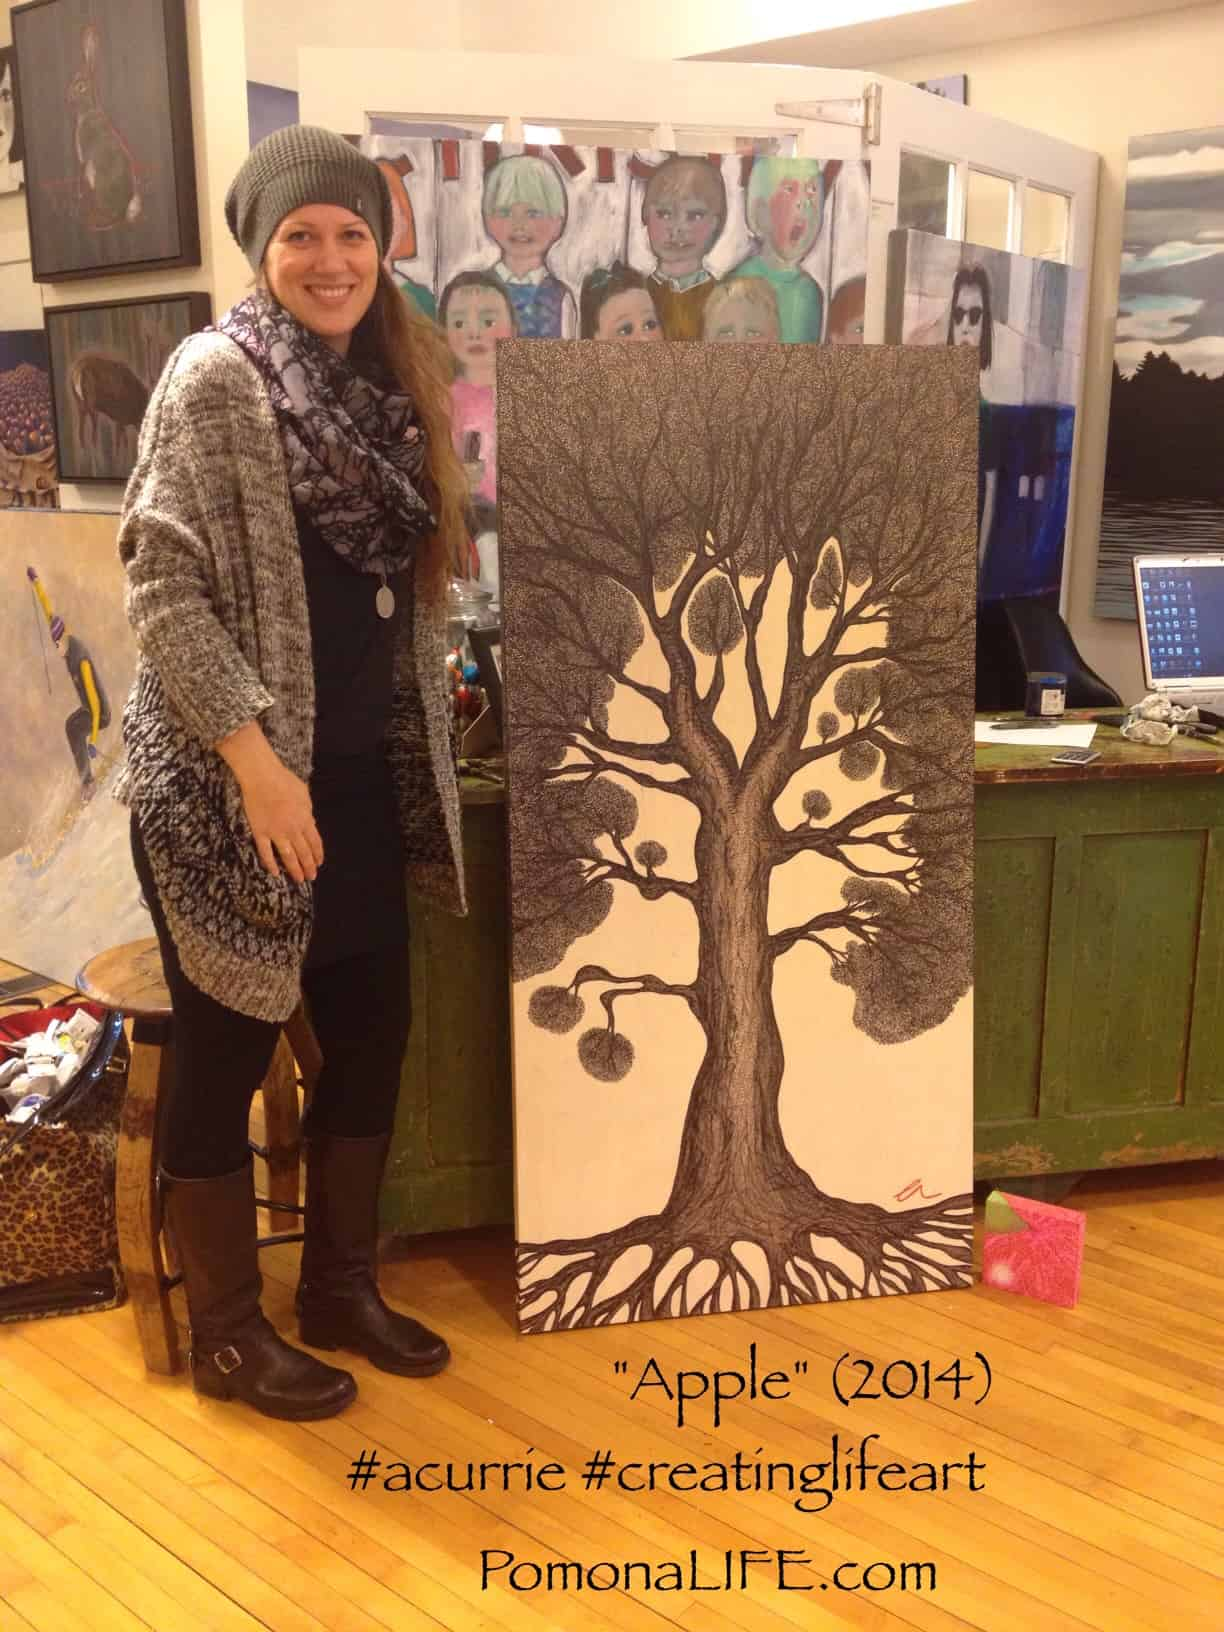 HEALING THROUGH THE ARTS: PROFILE ON VISUAL ARTIST ANDREA CURRIE